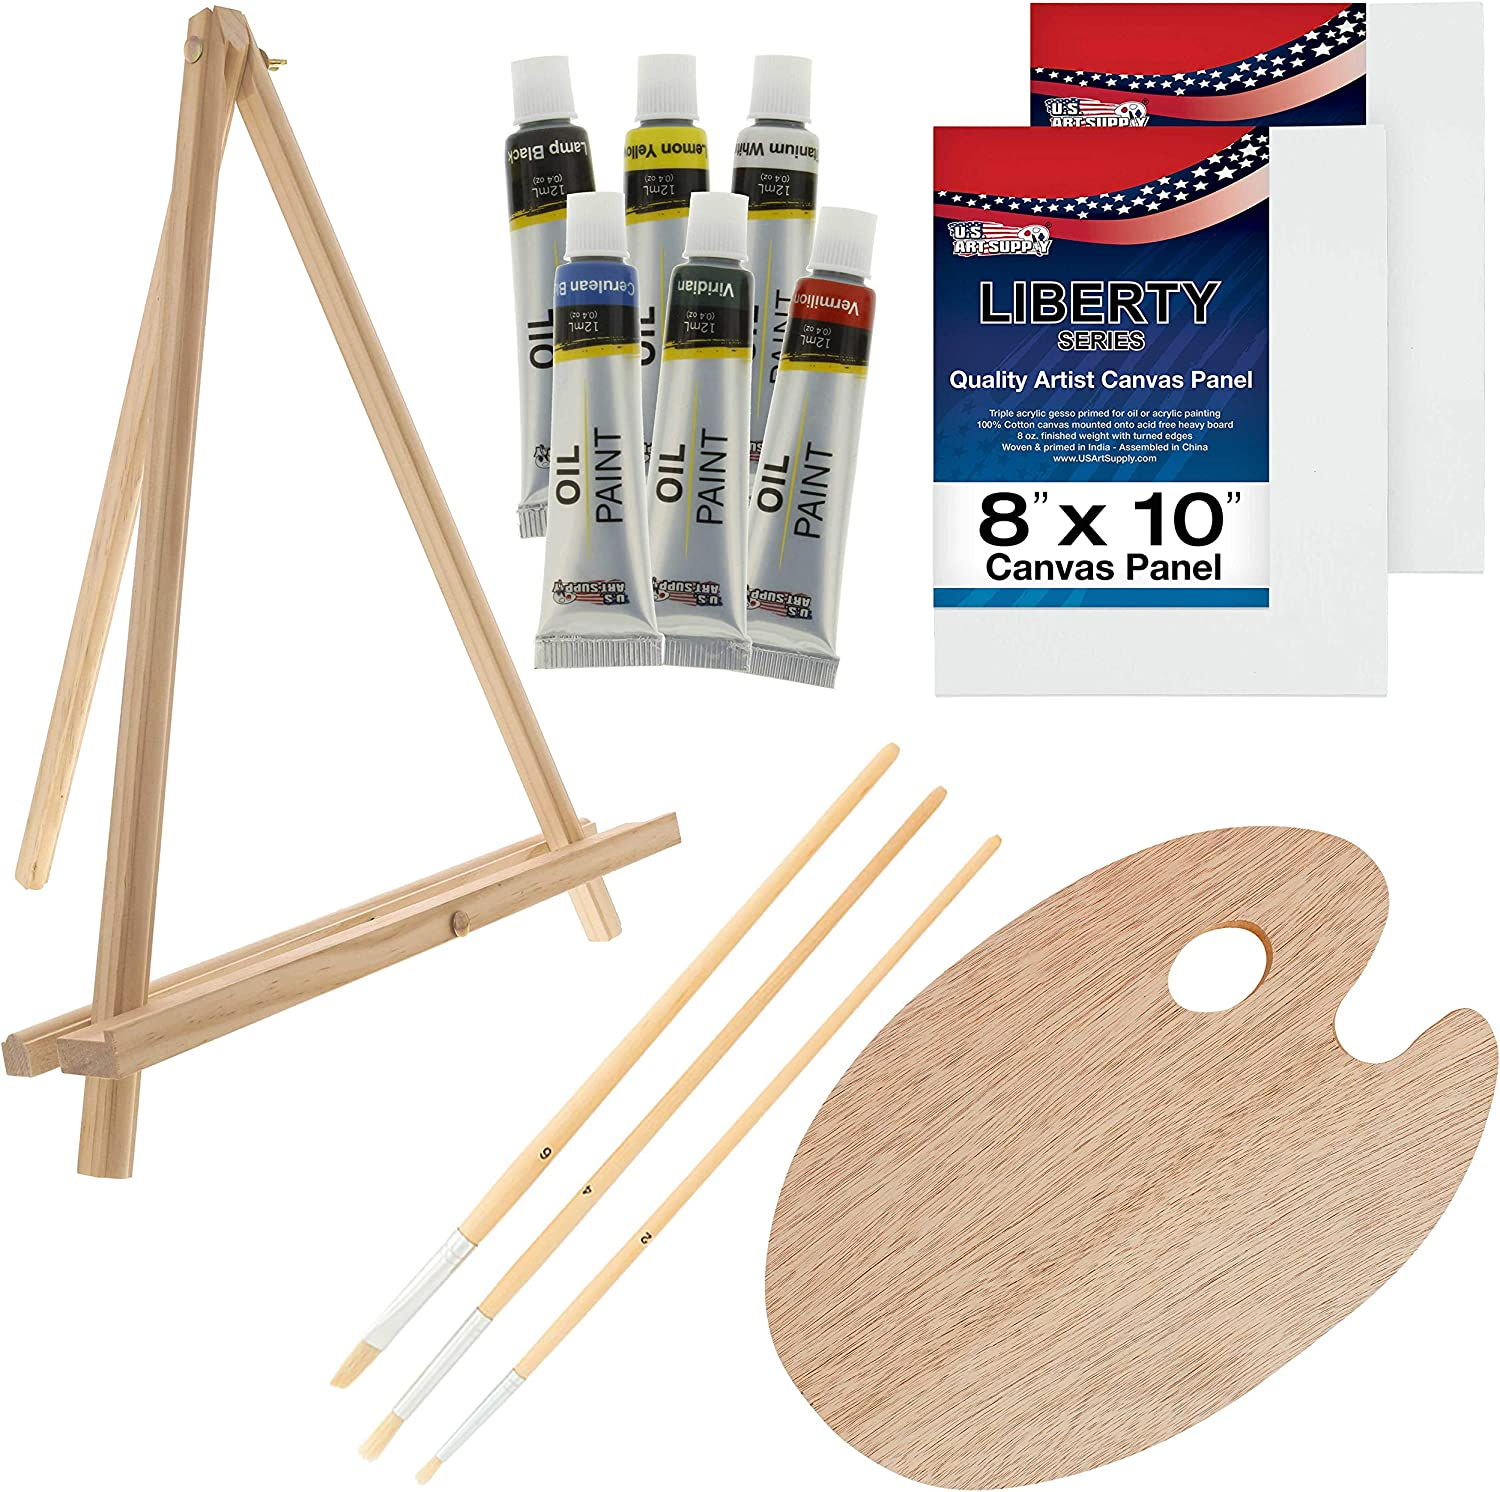 Linxueyi Mini Canvas and Natural Wood Easel Set for Art Painting Drawing Craft Wedding Supply